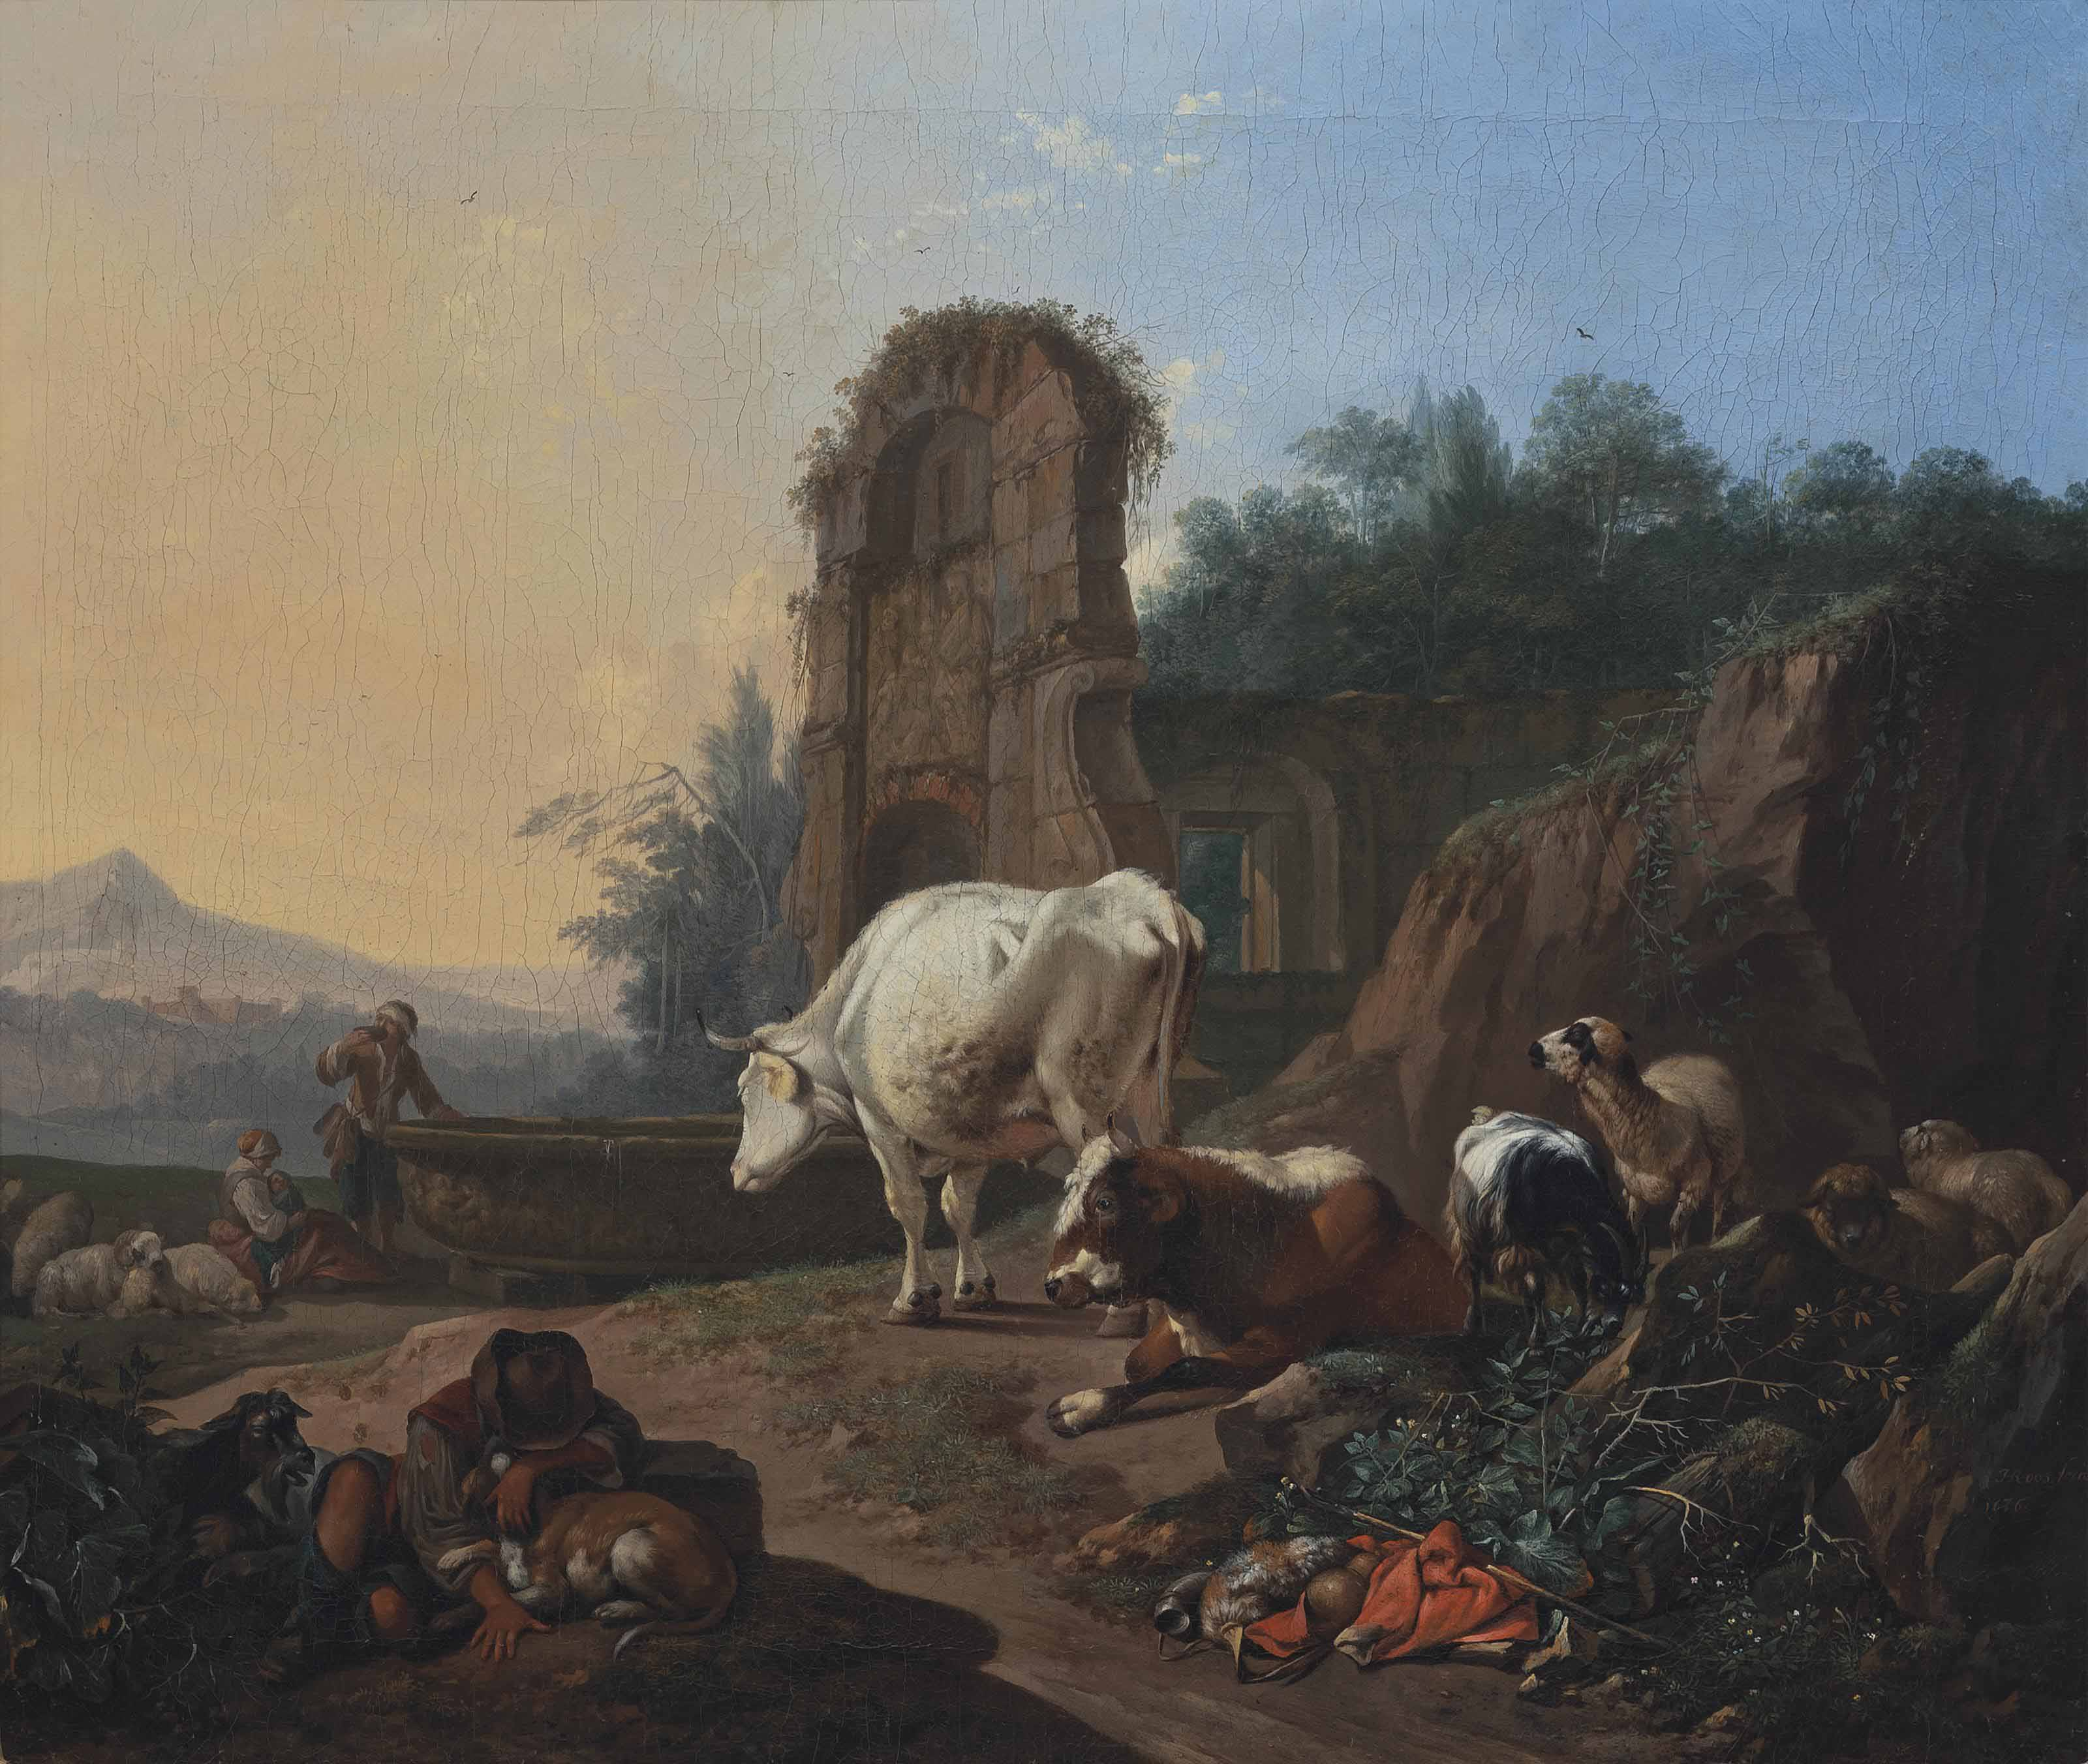 A pastoral landscape with a sleeping herdsman, cattle, goats and sheep, a fountain and architectural ruins beyond